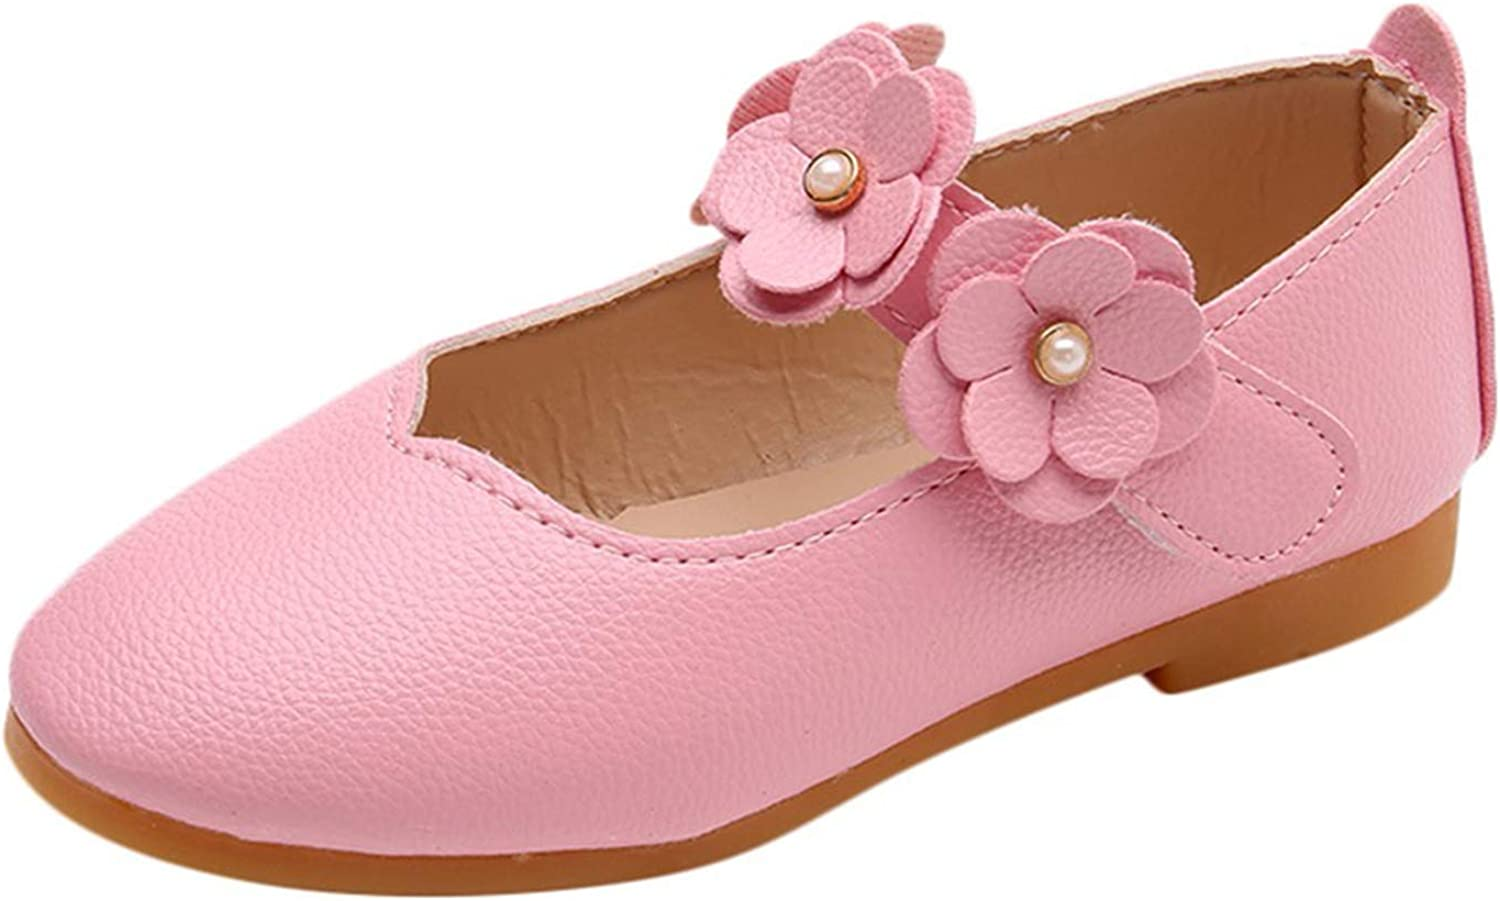 Baby Max 75% OFF Girls Shoes Soft Challenge the lowest price of Japan ☆ Sole Flower Ballerina Girl Princess